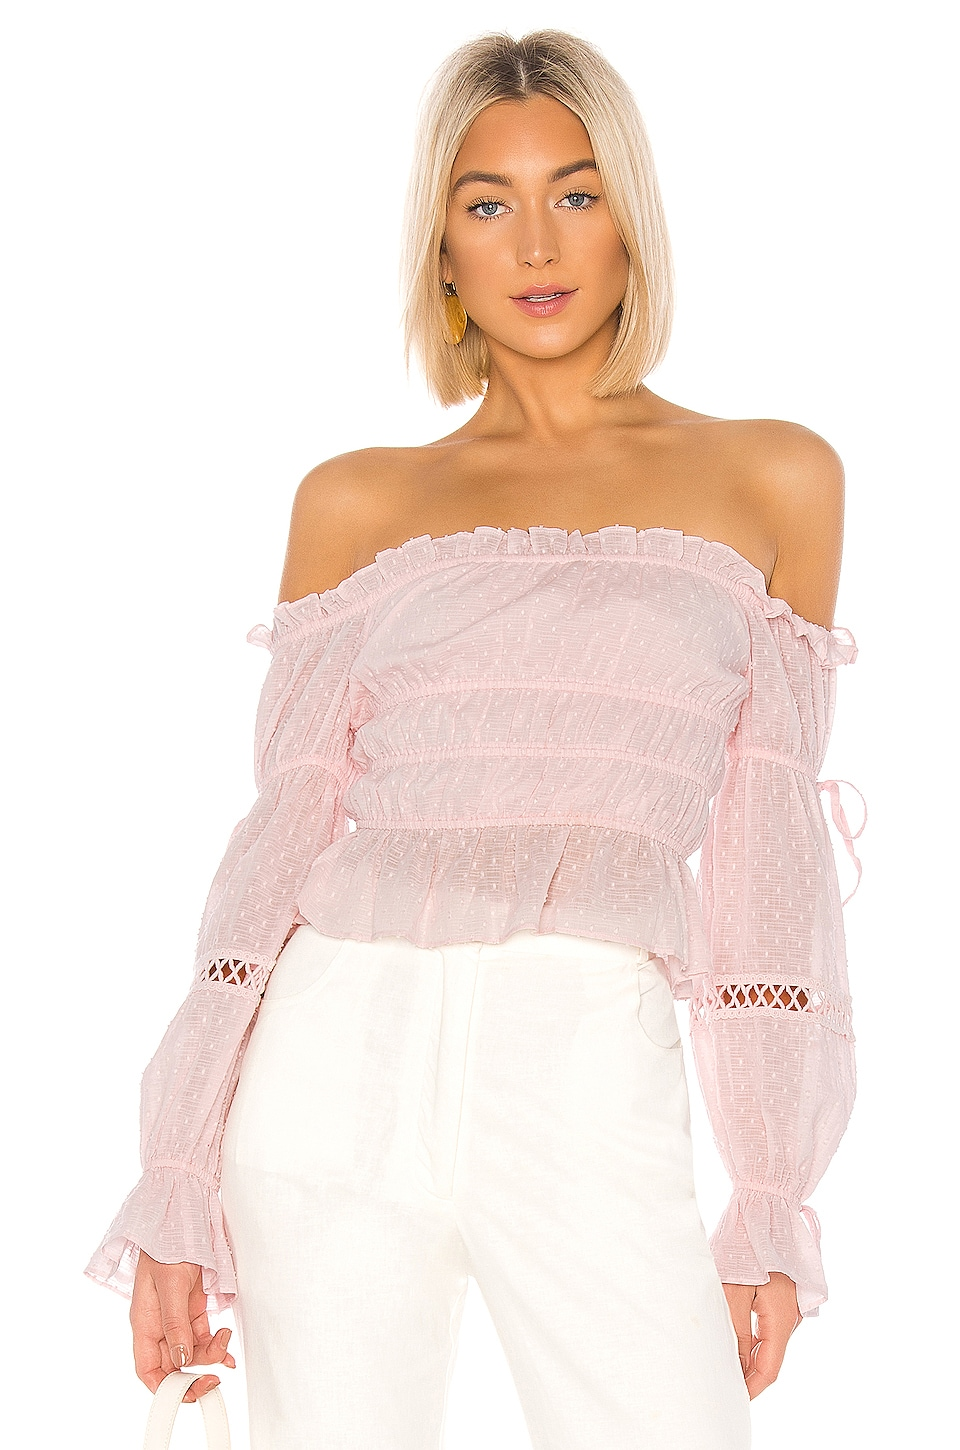 MAJORELLE Harrison Top in Baby Pink